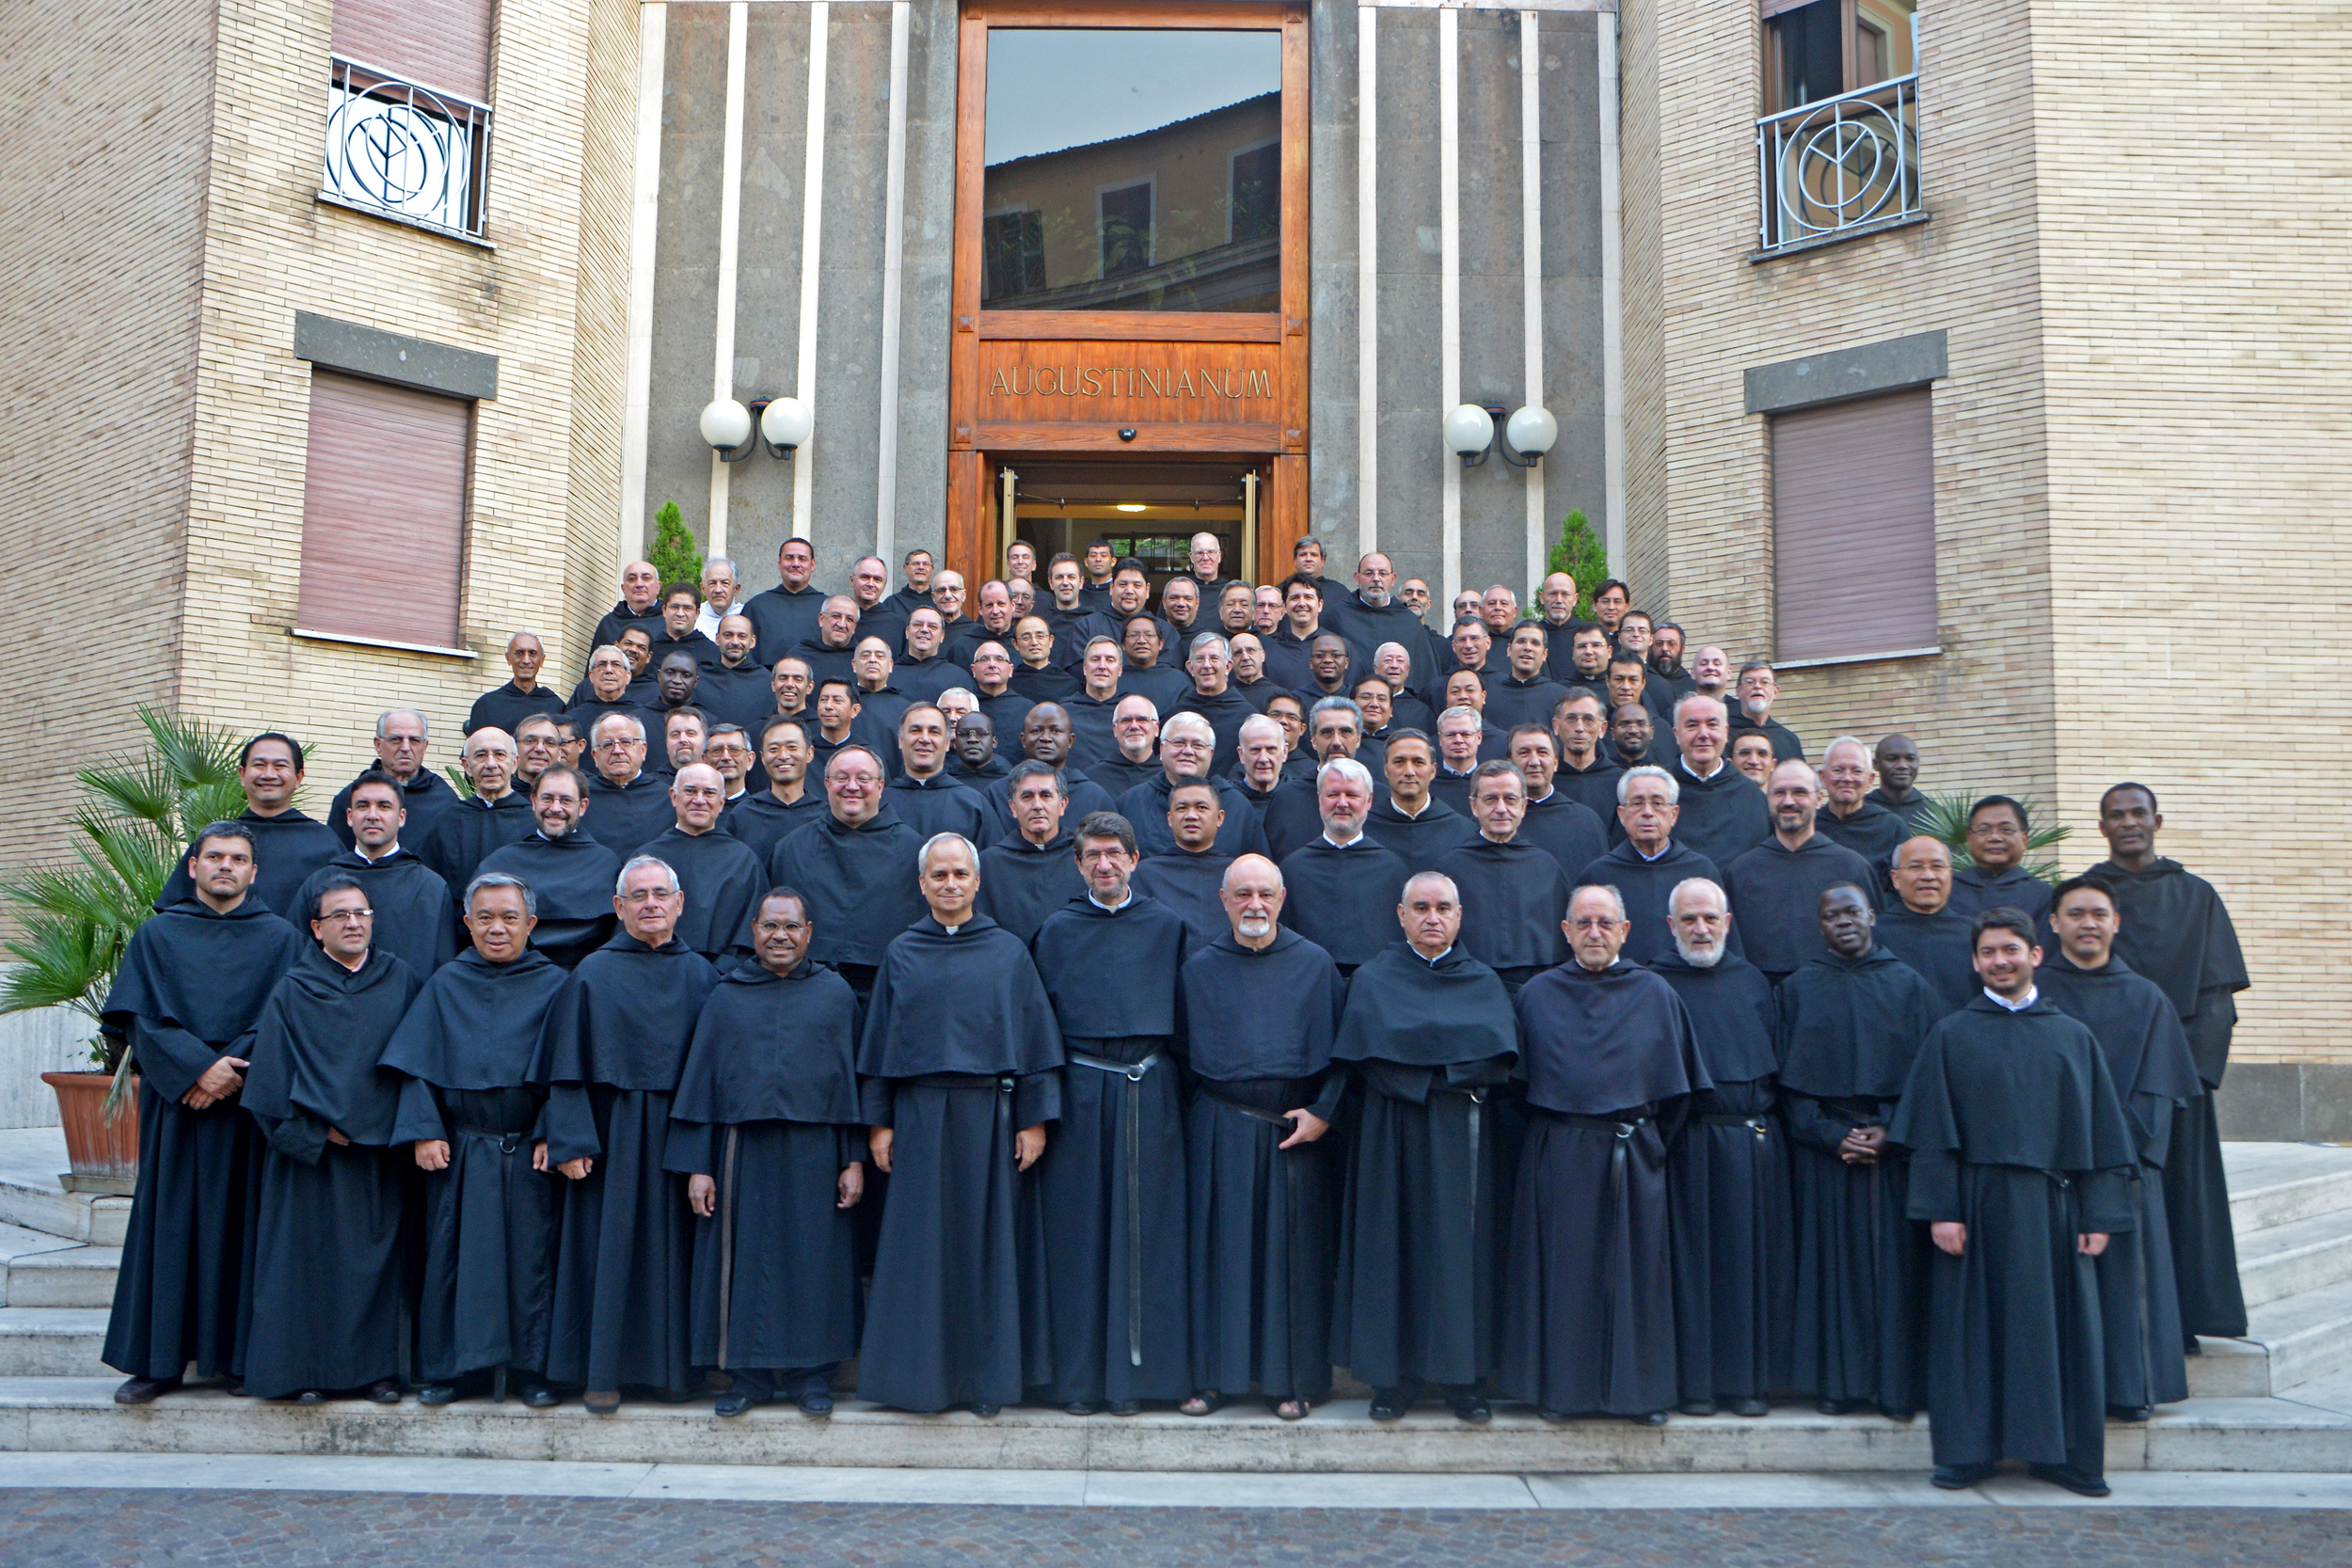 Group photo of the Augustinian General Chapter of 2013 in Rome